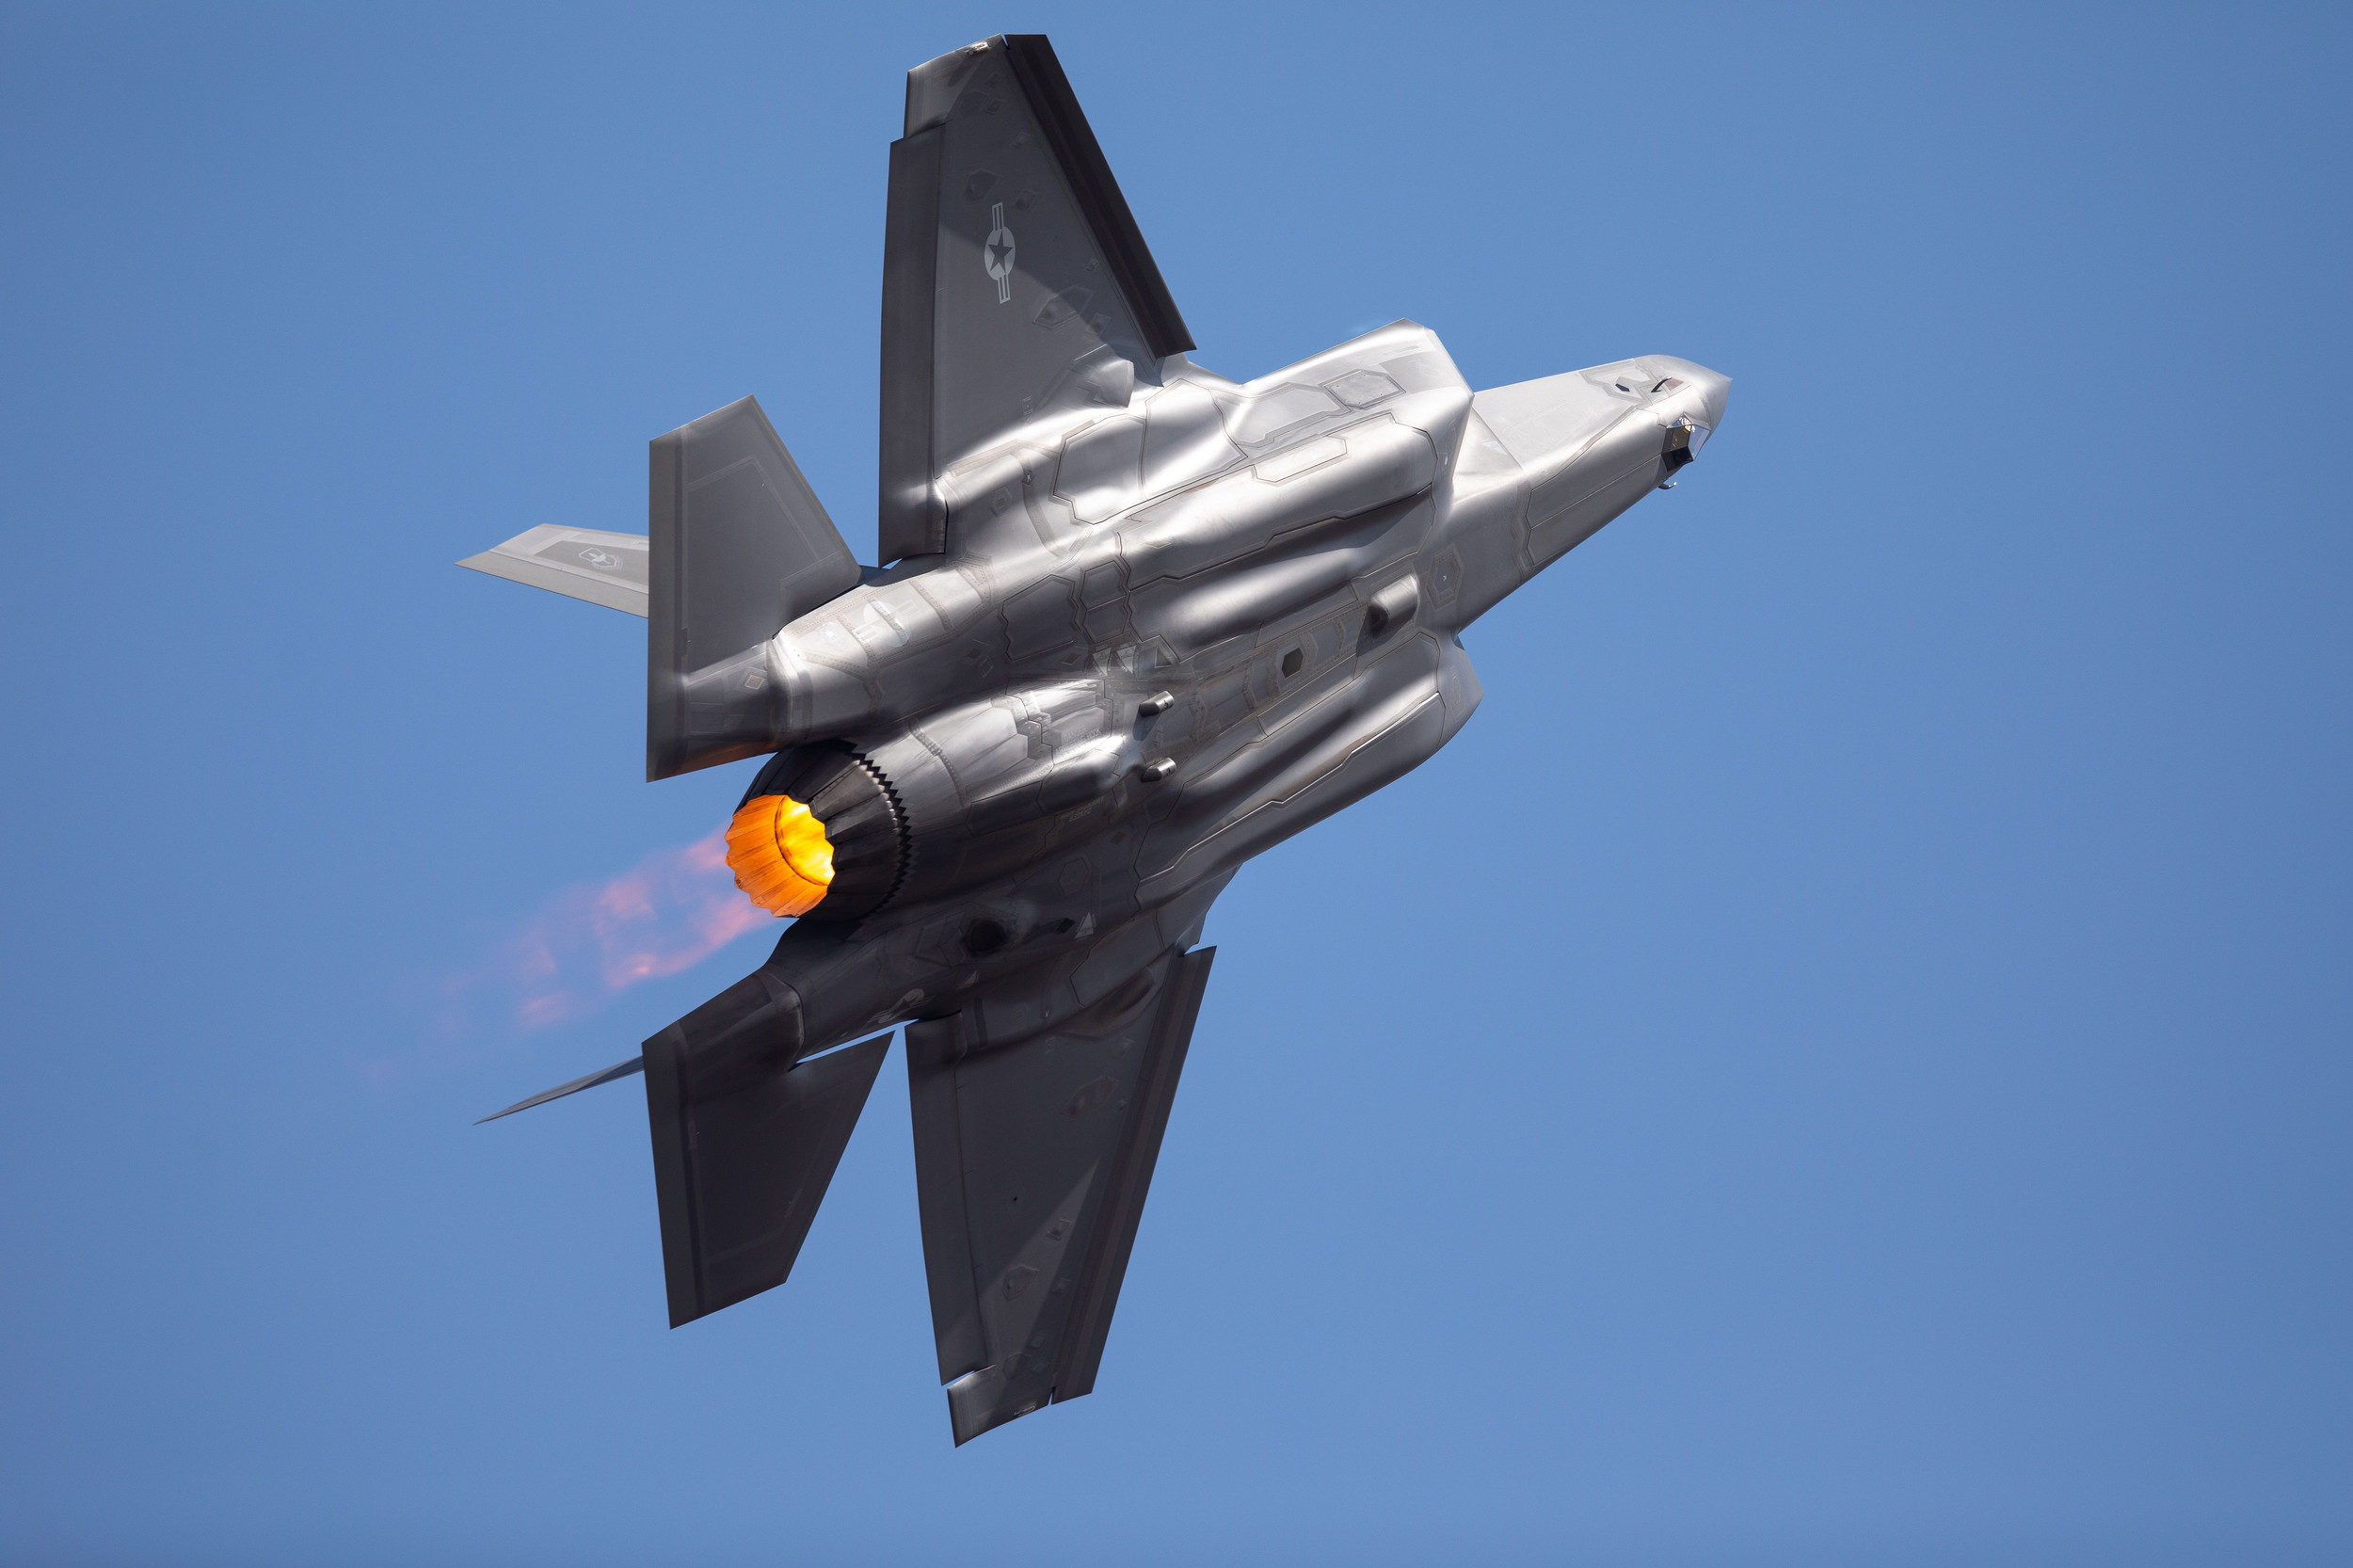 US officials welcome Norway's new F-35 capabilities in an increasingly competitive Northern Europe